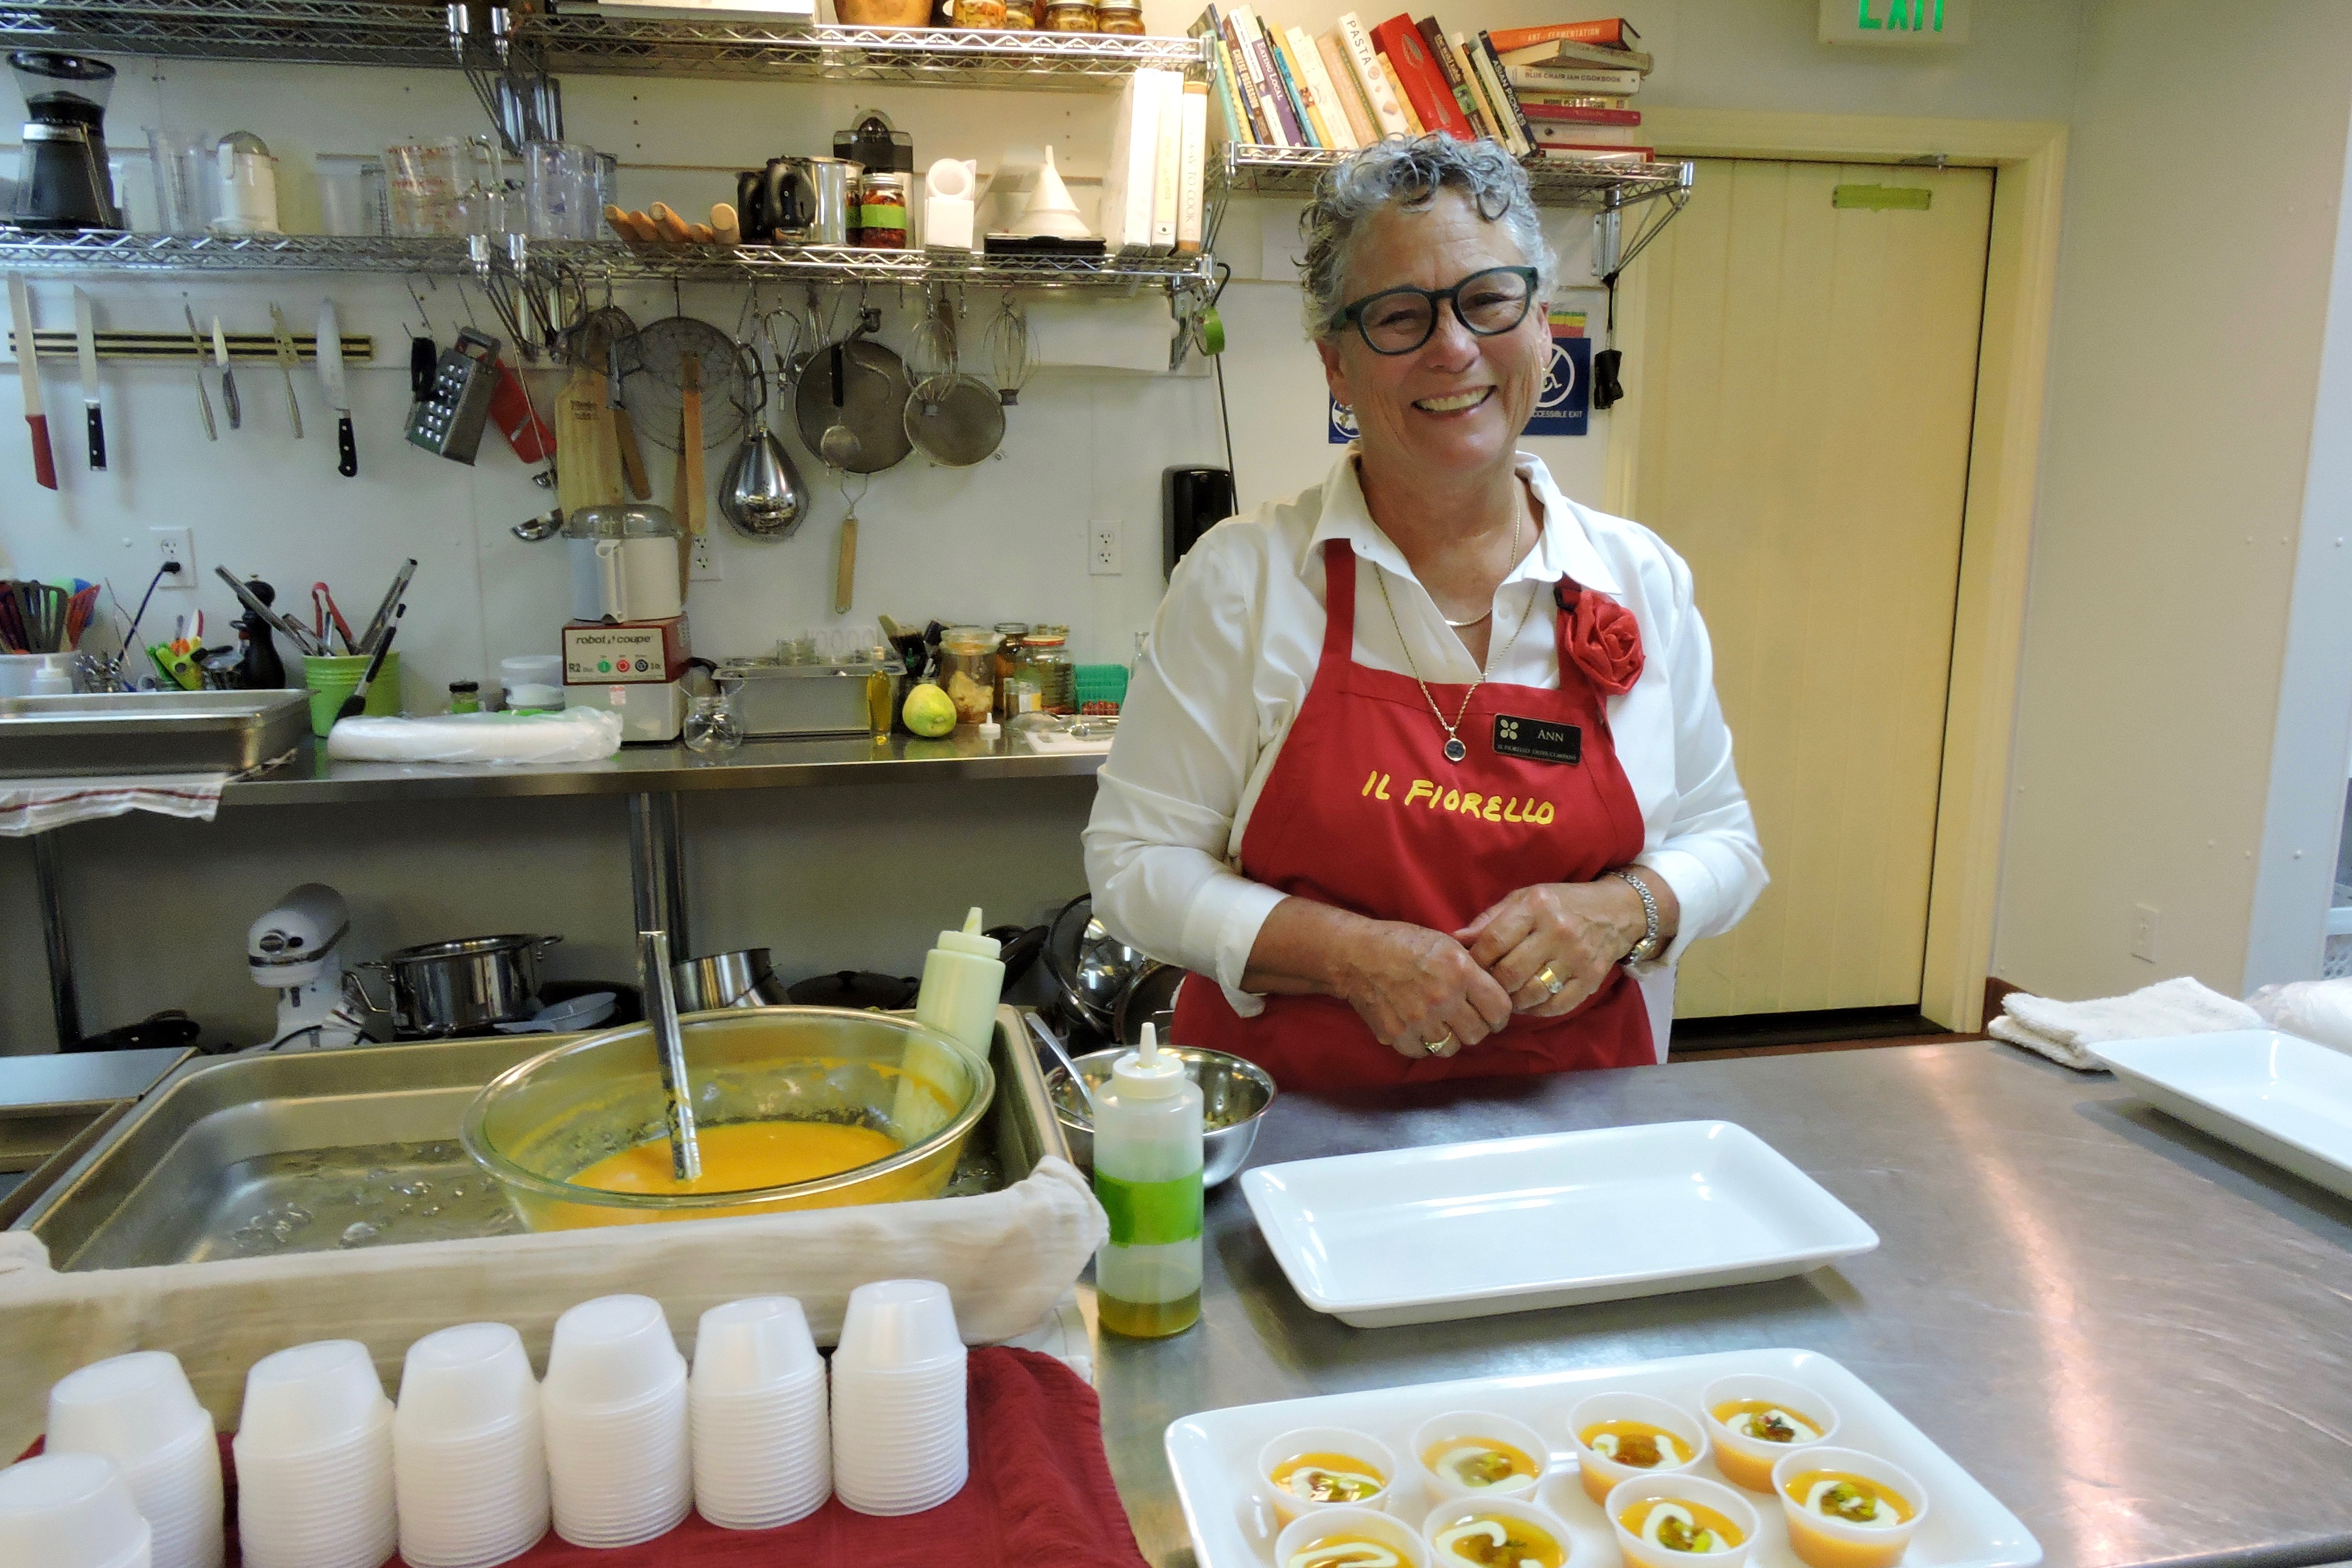 Ann Sievers, owner of Il Fiorello, greeted guests with a smile and a delicious treat.